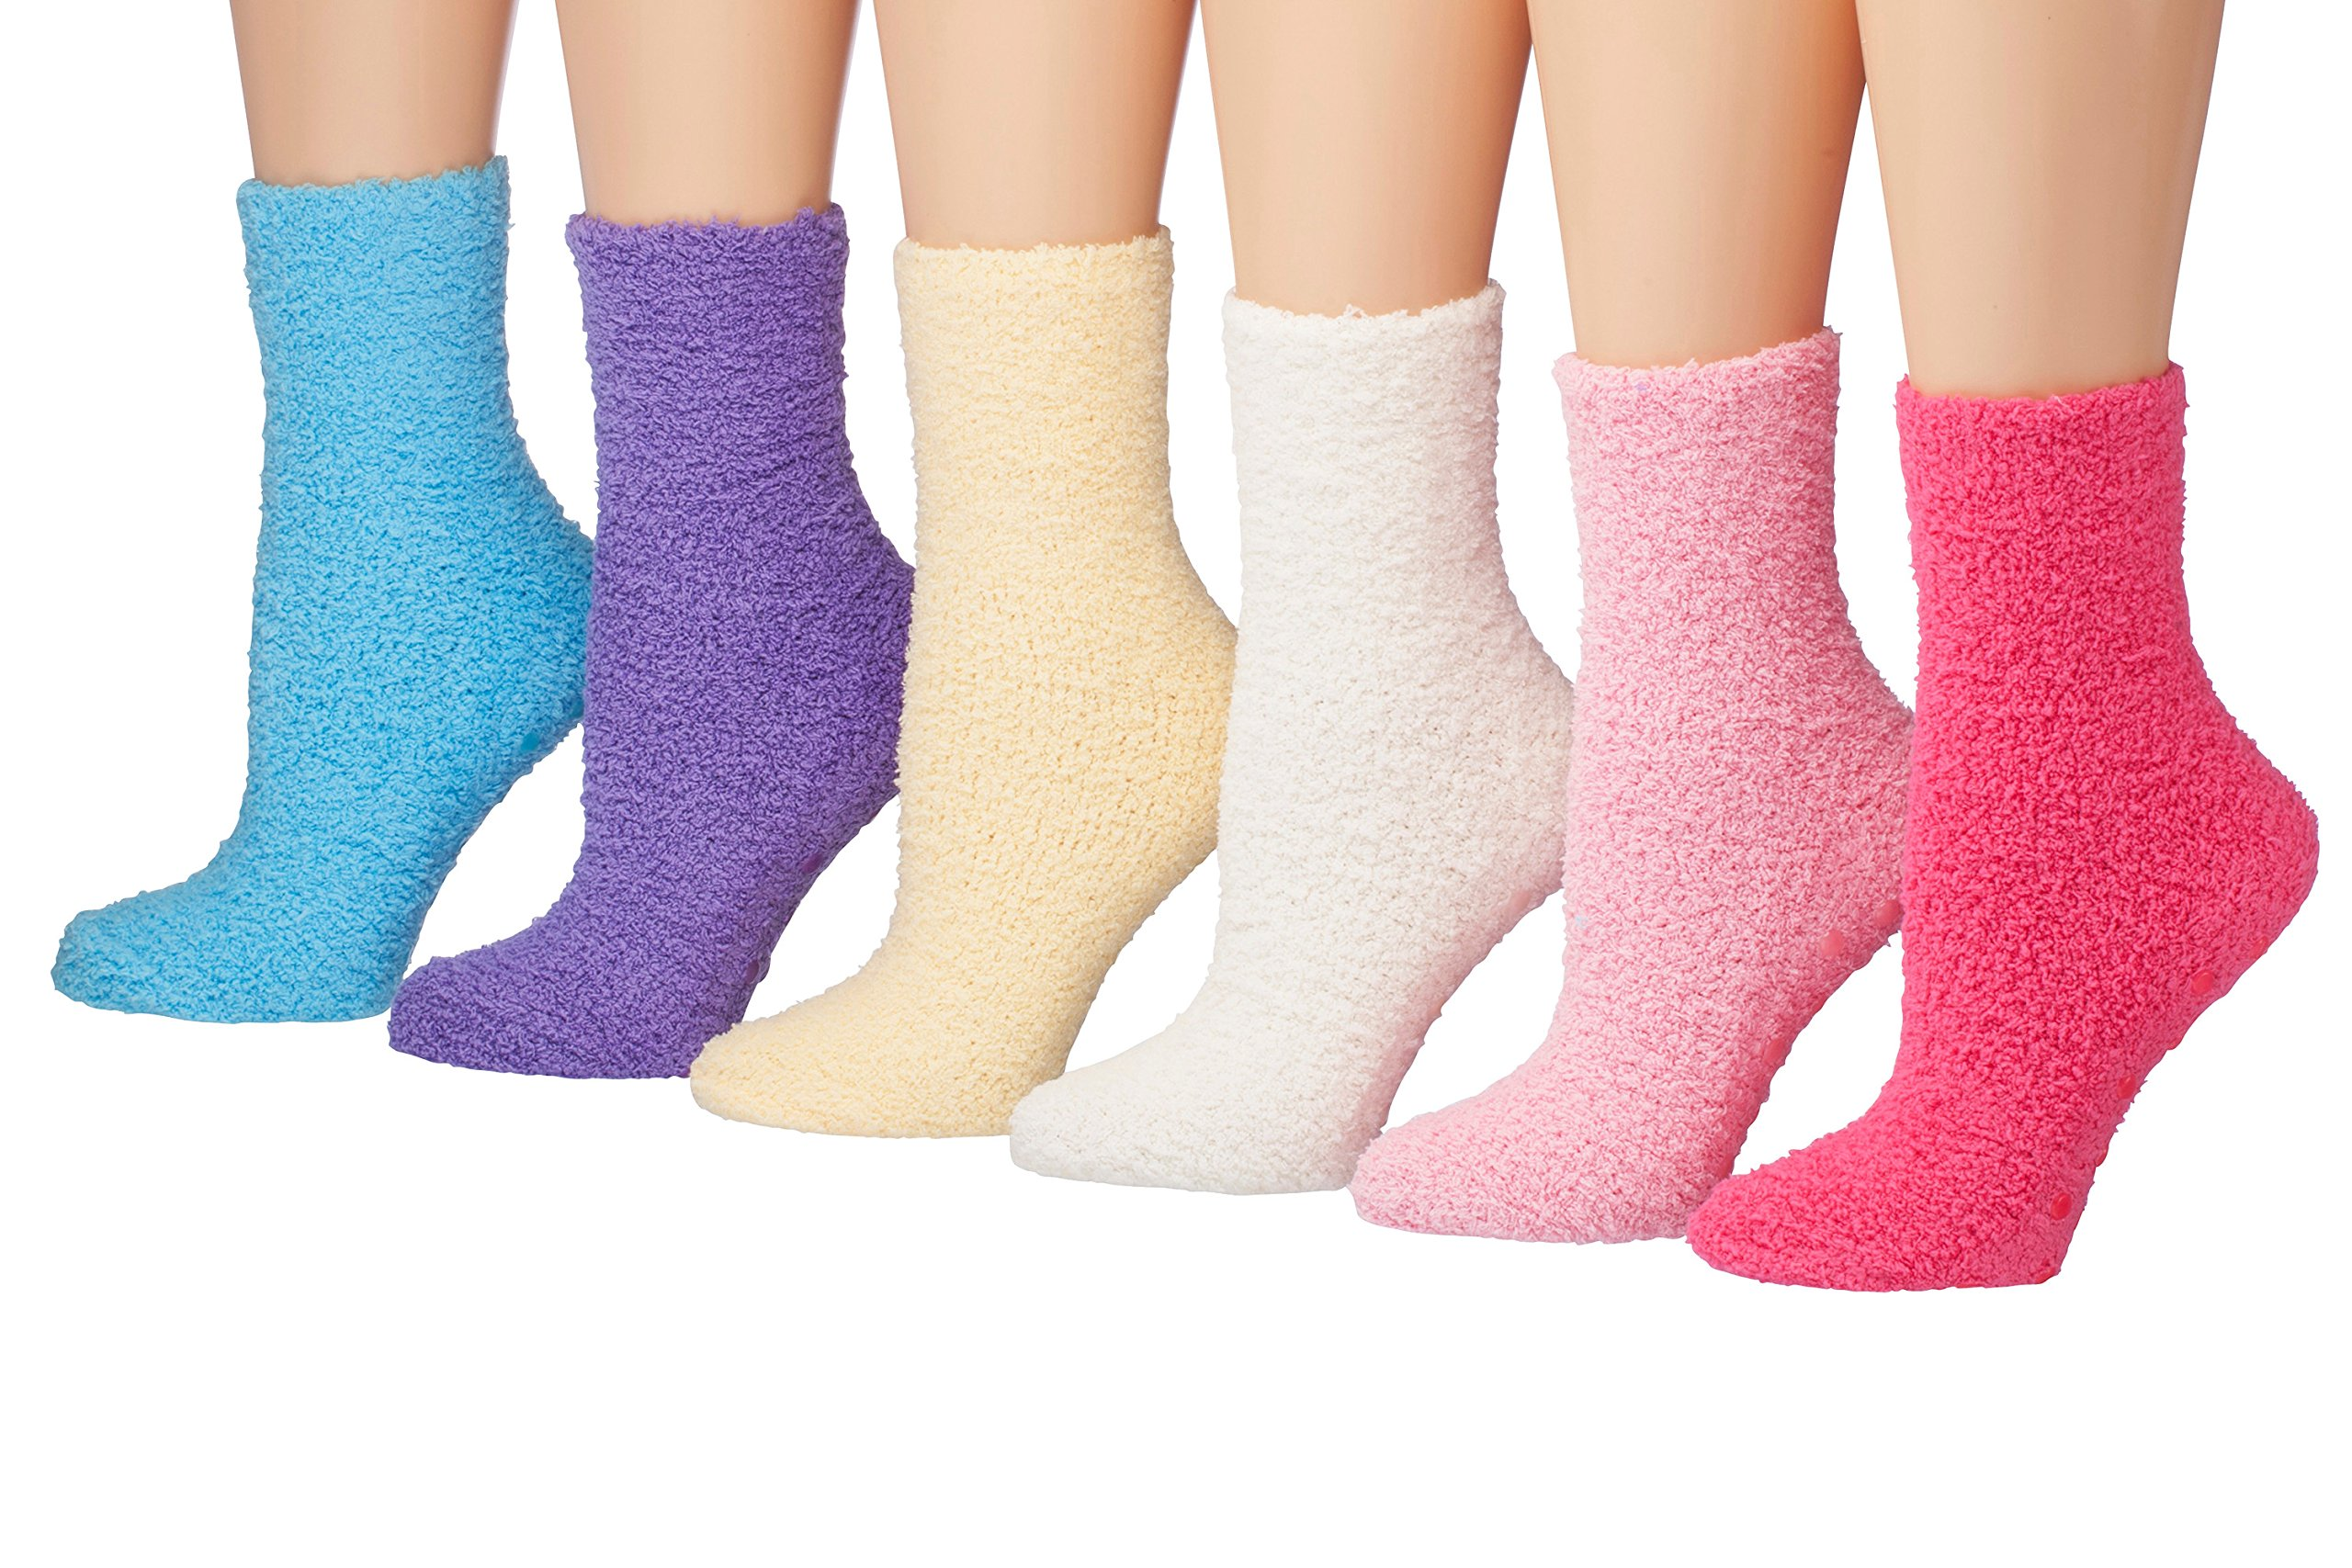 Tipi Toe Women's 6-Pairs Solid Color Premium Soft Warm Microfiber Winter Soft Fuzzy Crew Socks (sock size 9-11) Fits shoe size 6-9, FZ04